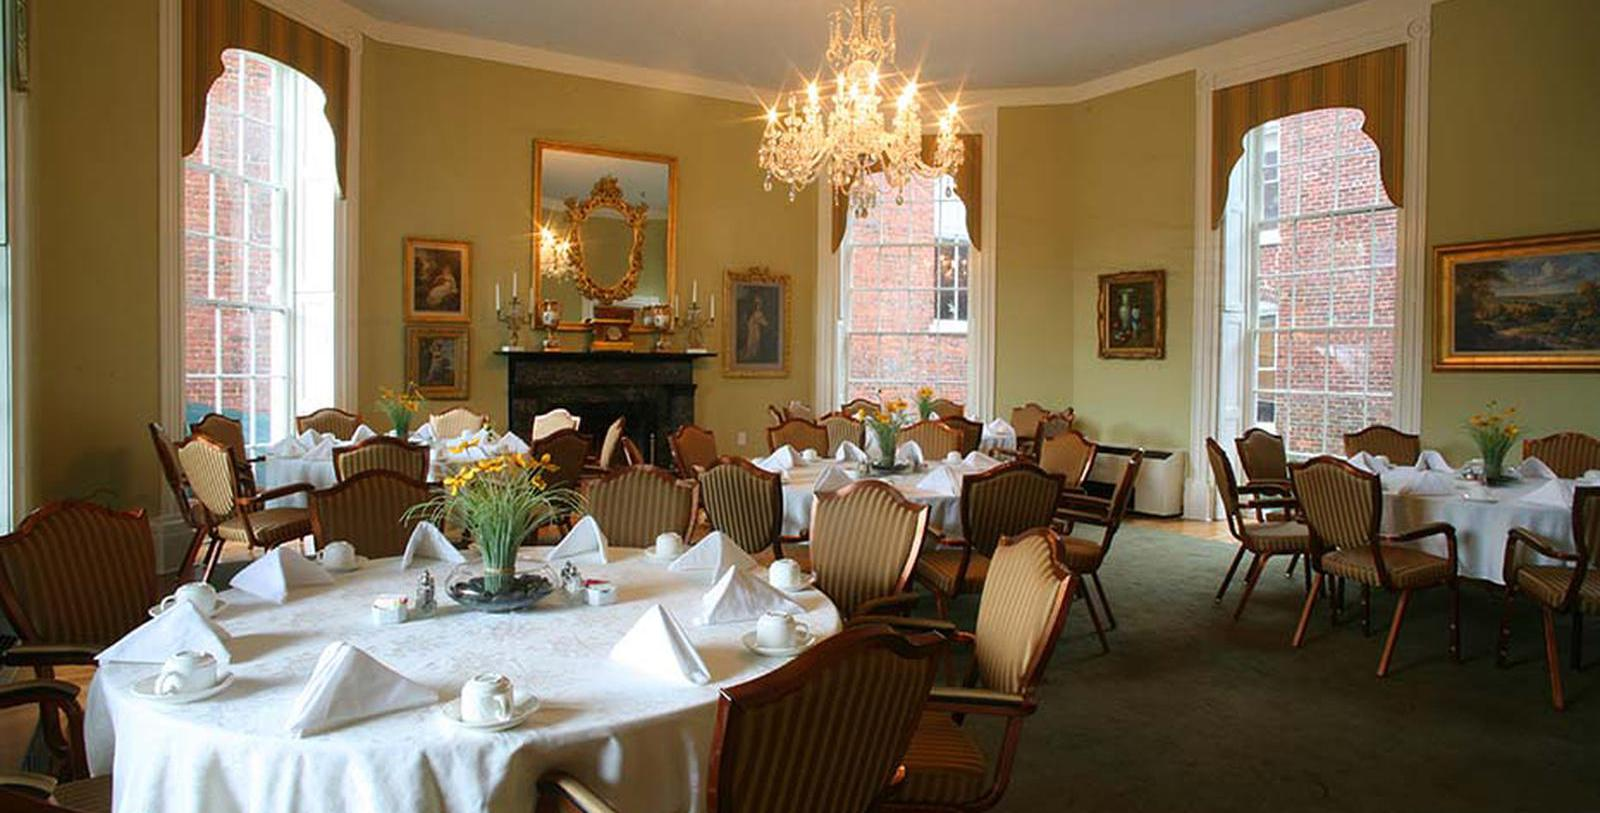 Image of Dining Room at Sister's American Grille at The Martha Washington Hotel & Spa, 1832, Member of Historic Hotels of America, in Abingdon, Virginia, Taste